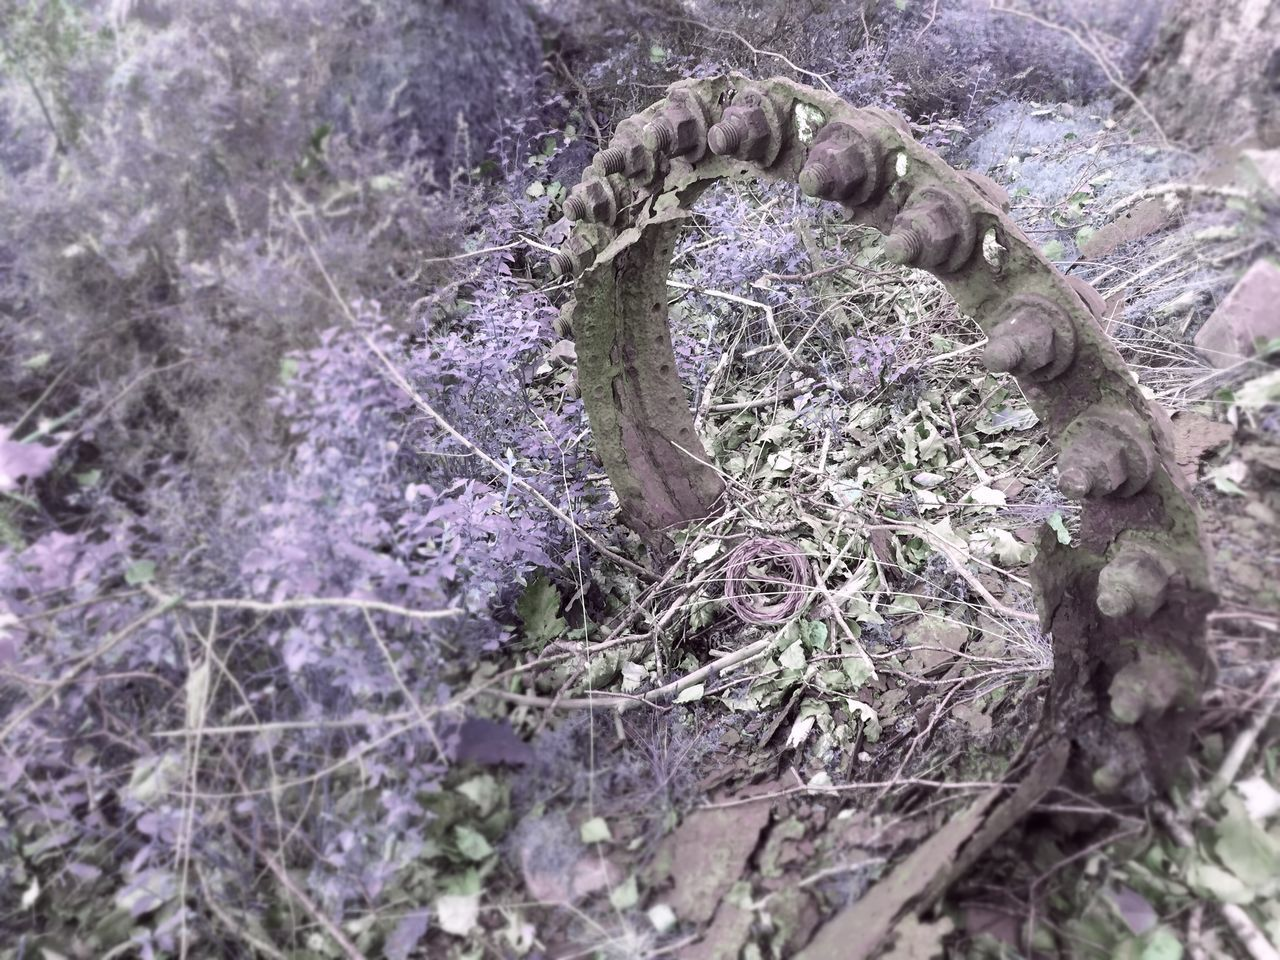 growth, nature, purple, no people, day, plant, outdoors, fragility, beauty in nature, close-up, flower, freshness